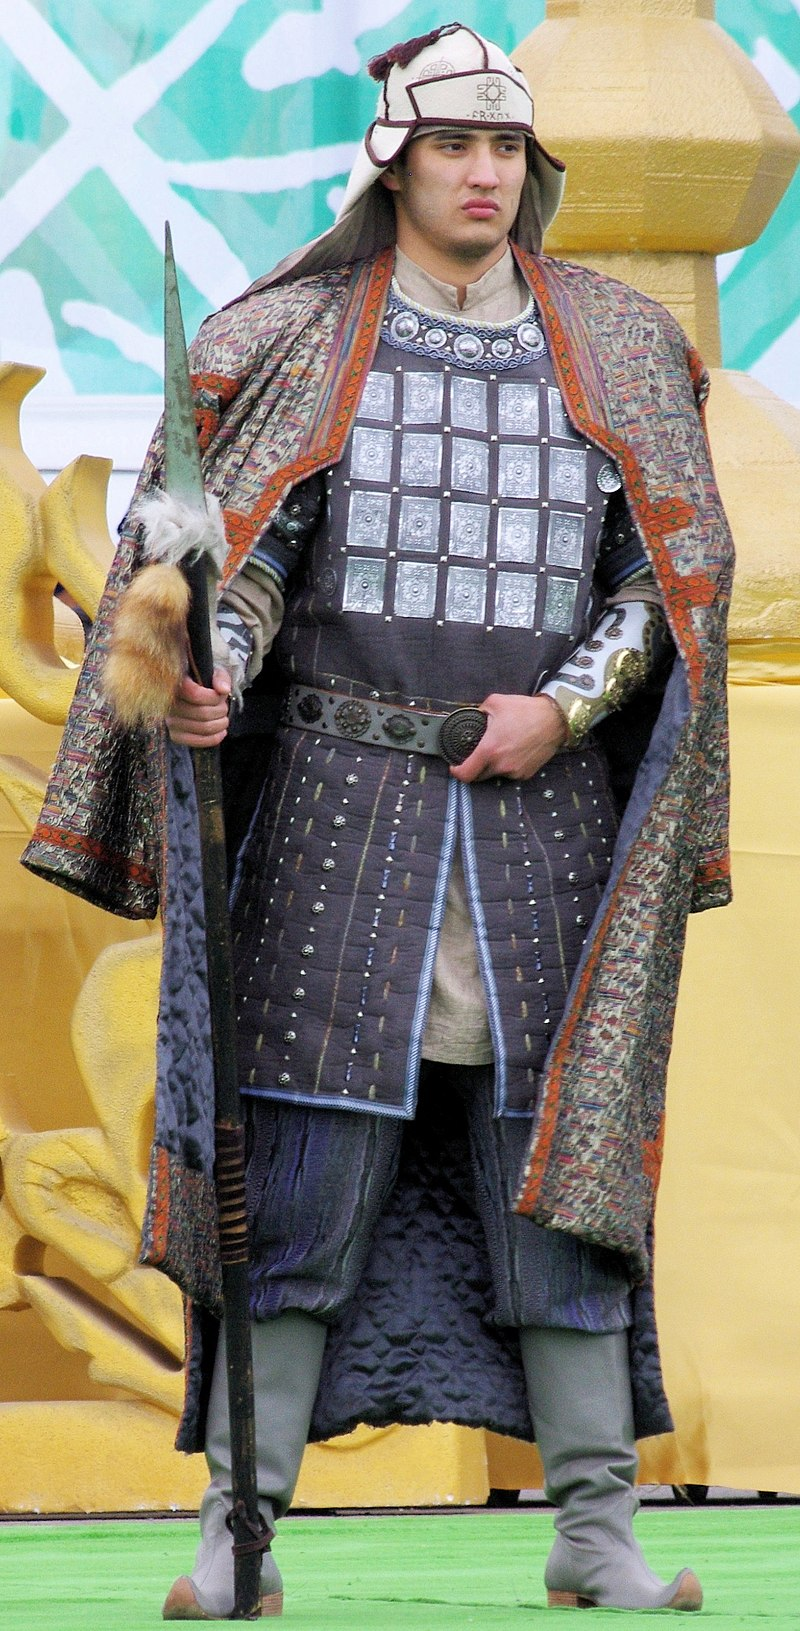 Kazakh guard 1.jpg